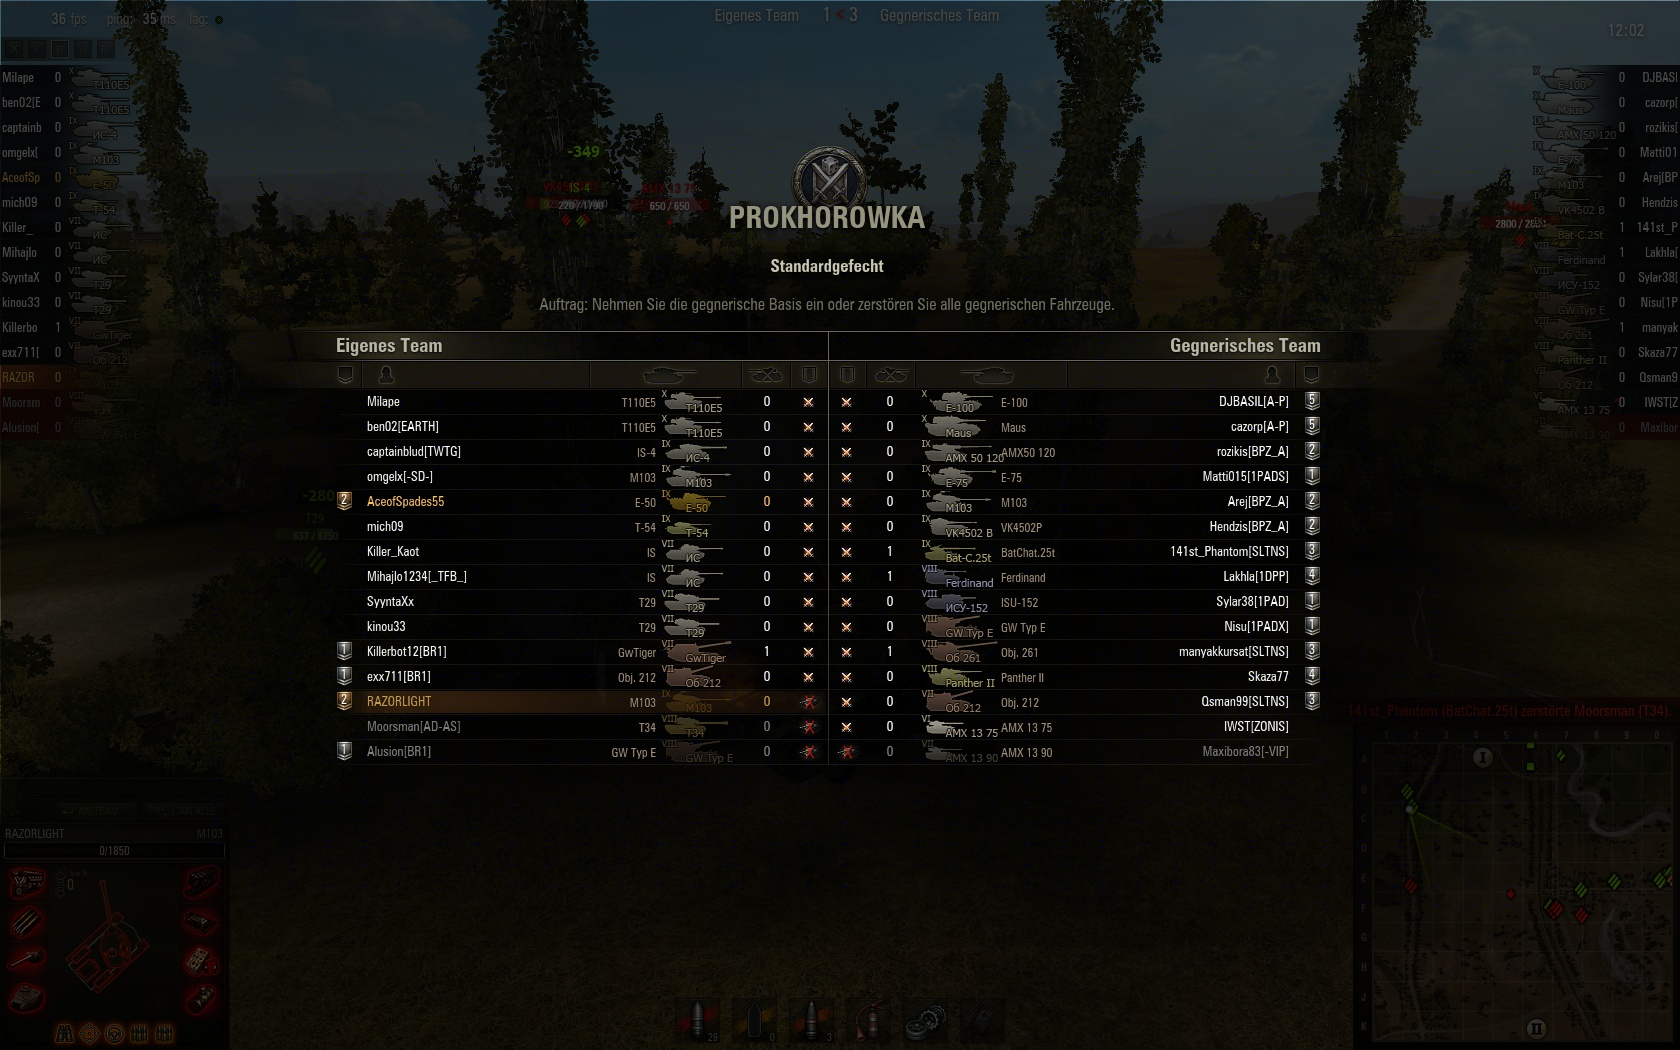 World of tanks matchmaking fail